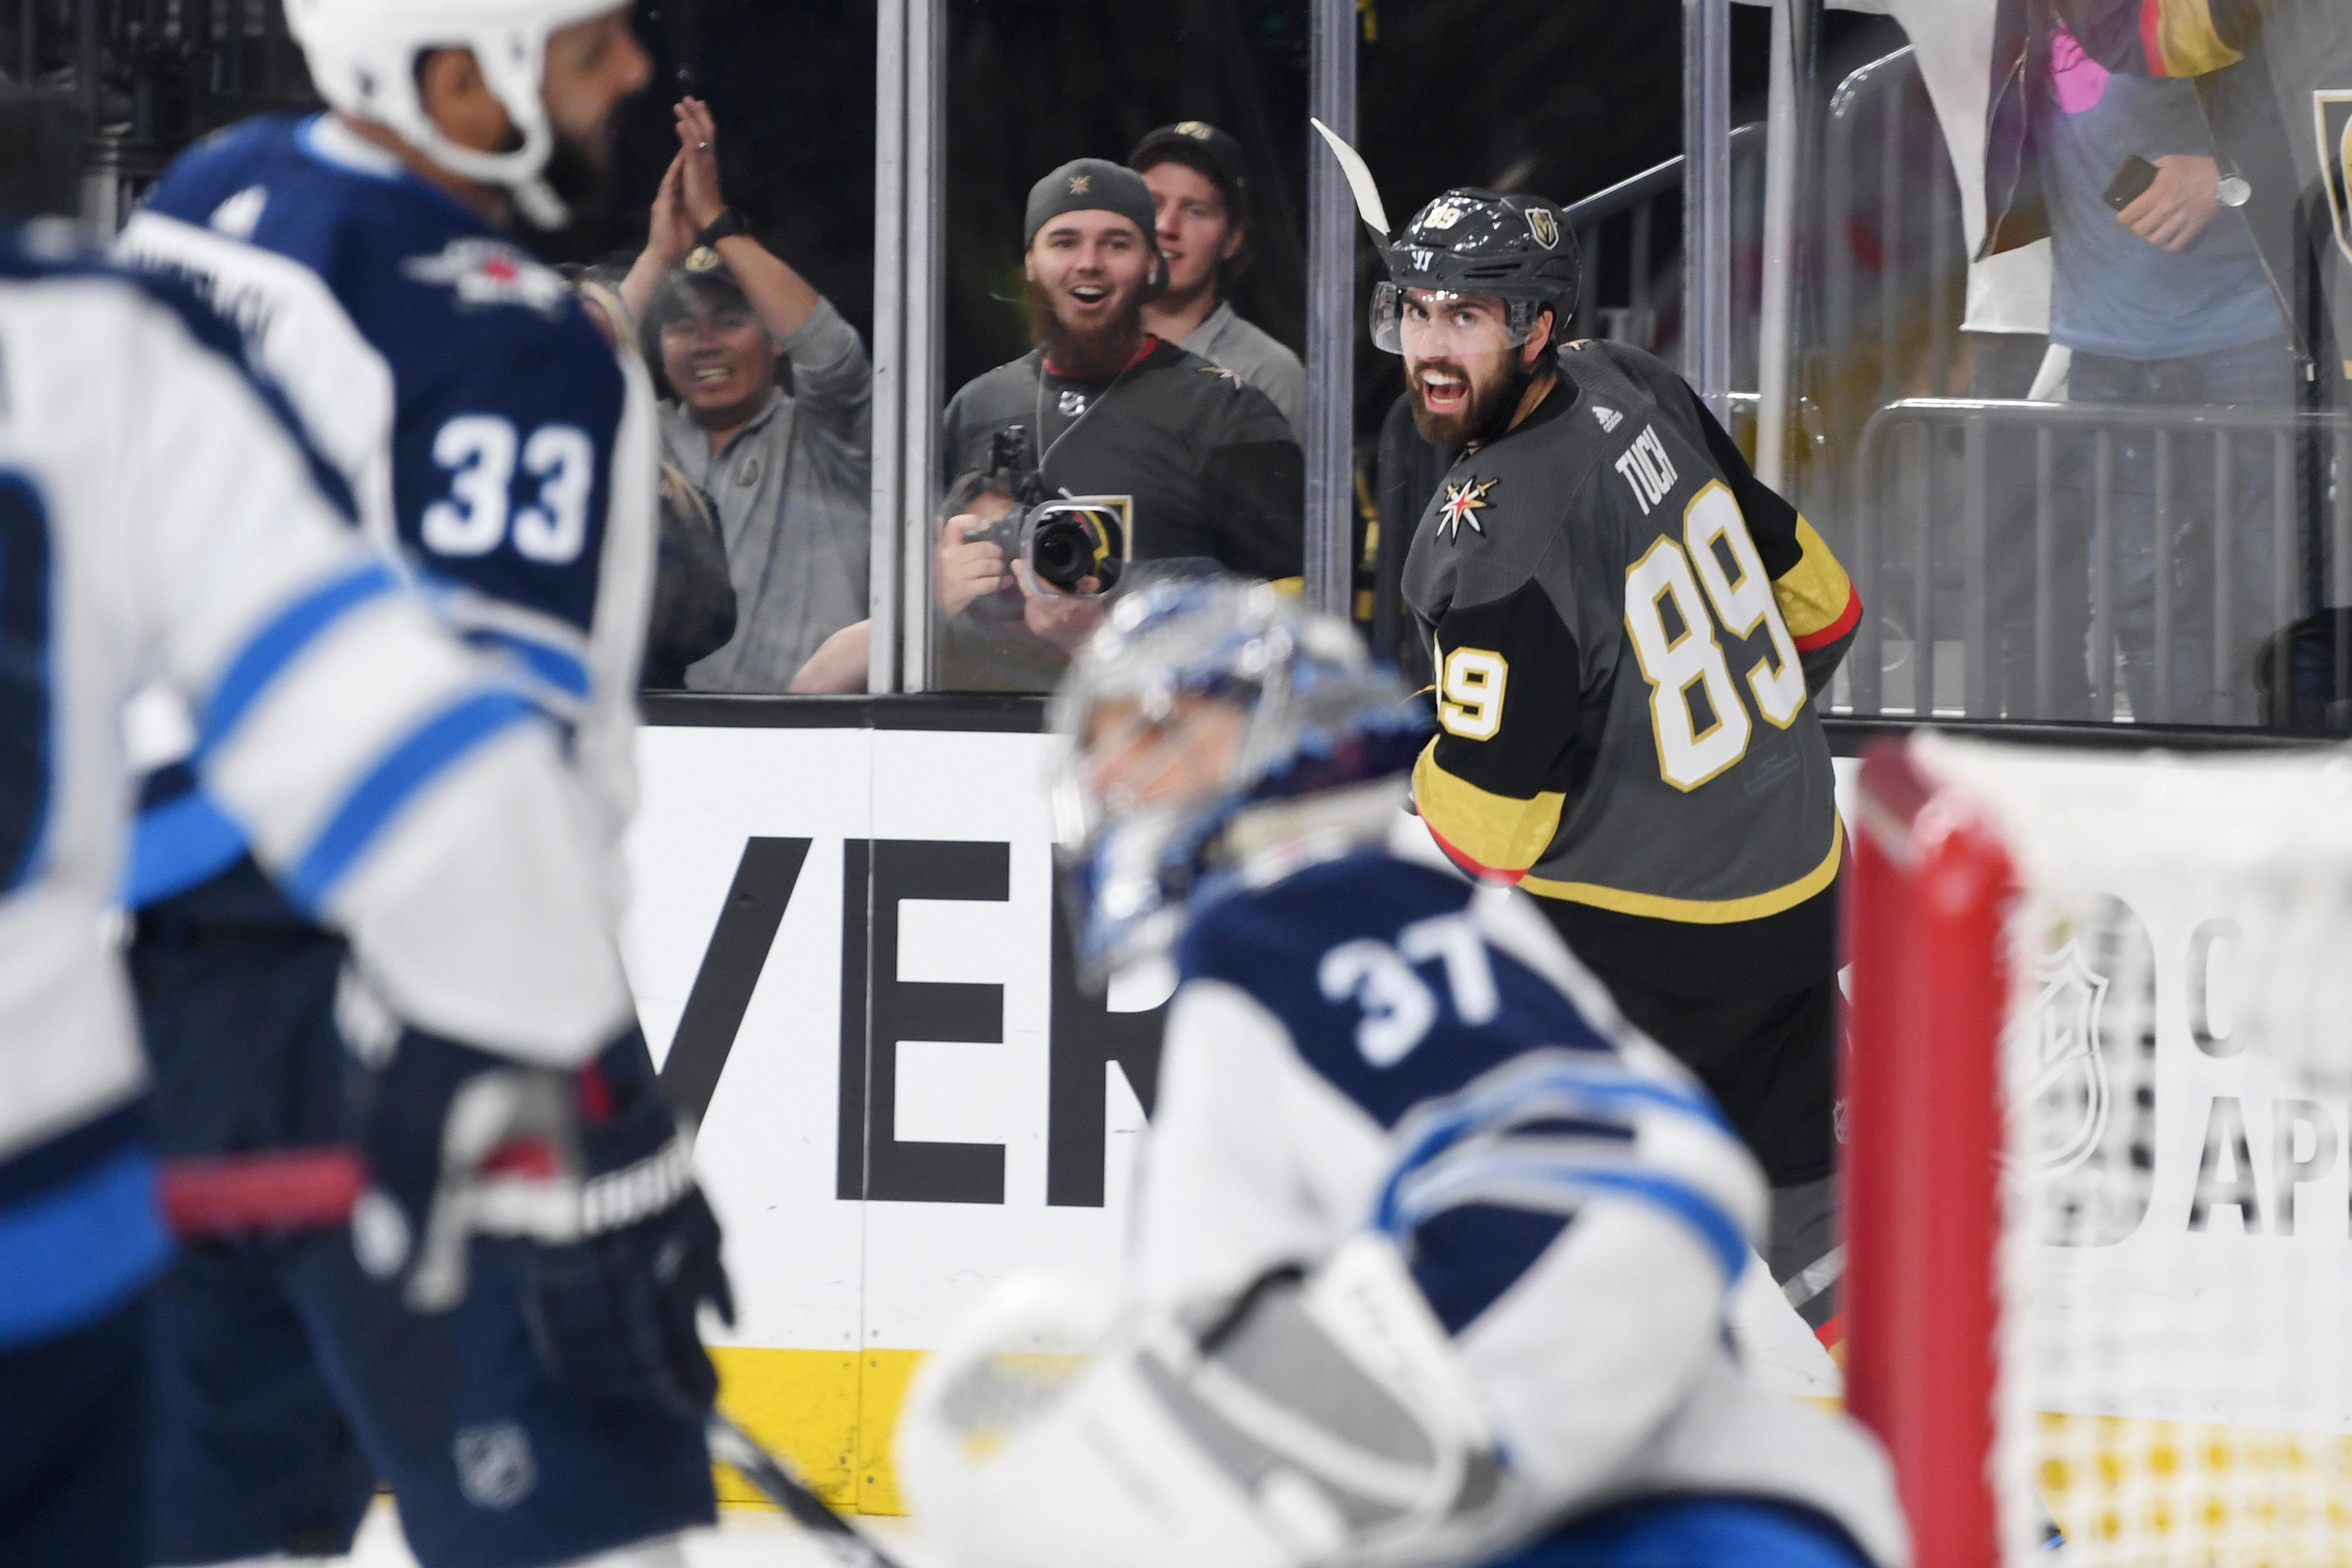 Vegas Golden Knights right wing Alex Tuch (89) looks back after scorning against the Winnipeg Jets during Game 3 of their NHL hockey Western Conference Final game Wednesday, May 16, 2018, at T-Mobile Arena. CREDIT: Sam Morris/Las Vegas News Bureau